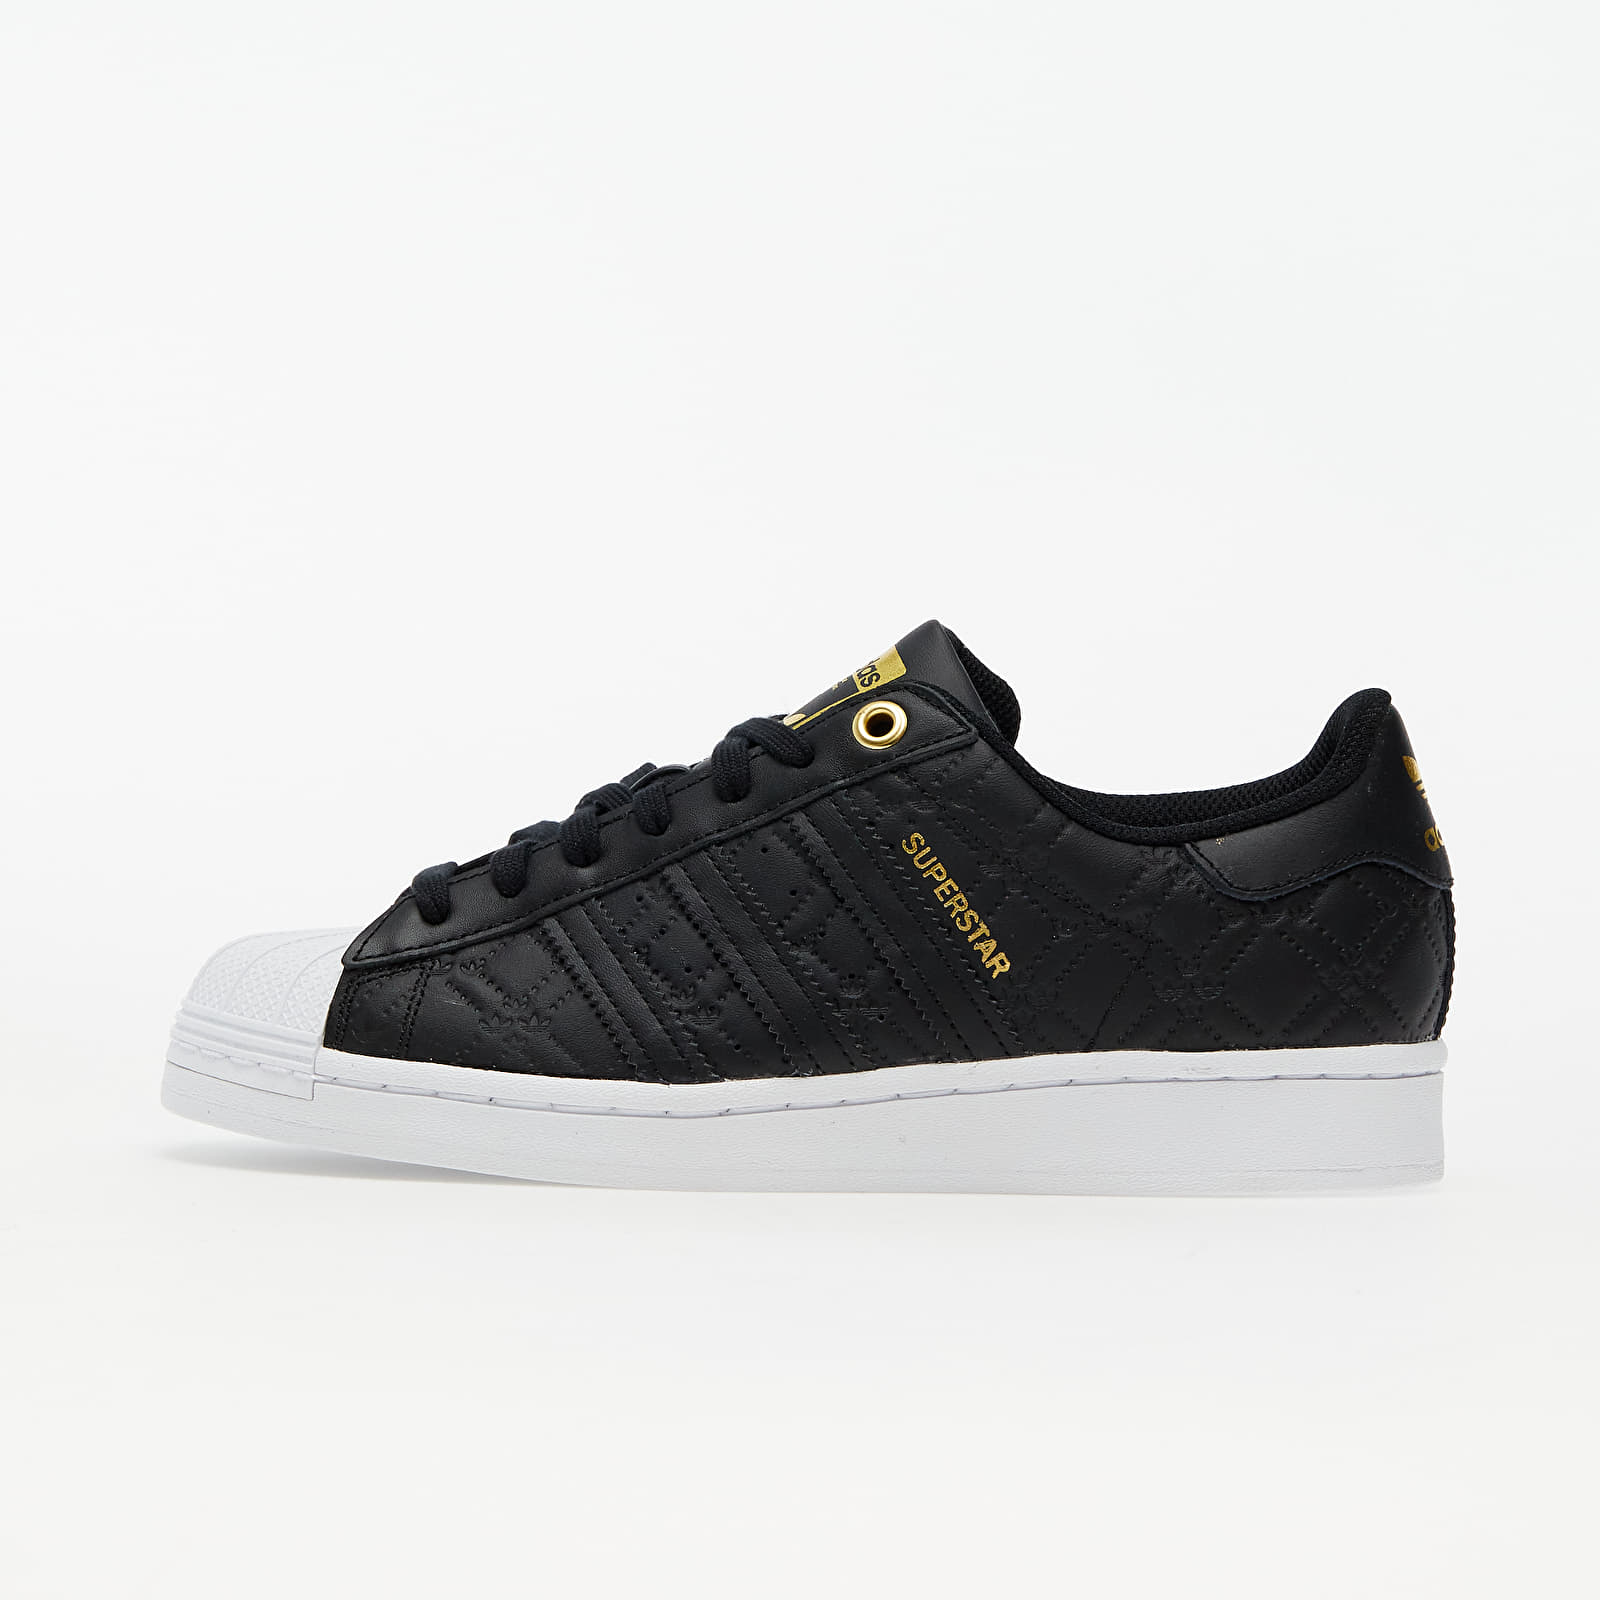 adidas Superstar W Core Black/ Gold Metalic/ Ftw White EUR 39 1/3